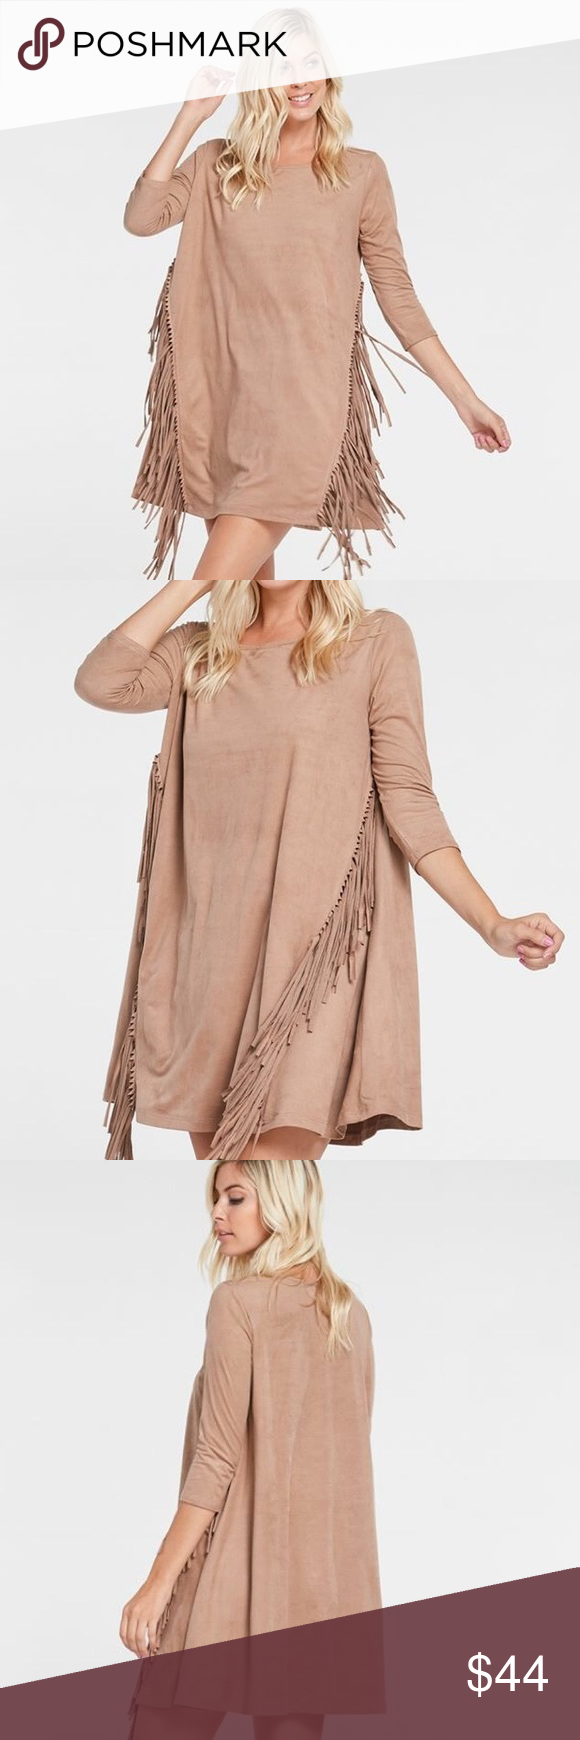 The Fawn Dress The Fawn dress is a suede beauty like no other. Be a goddess in this fun, fringe, sassy dress. 3/4 length sleeve, short in length, angled fridge down both sides of the front. MACARON (Rose/taupe) color.  Material: 95% POLYESTER 5% SPANDEX Owl About Happy  Dresses